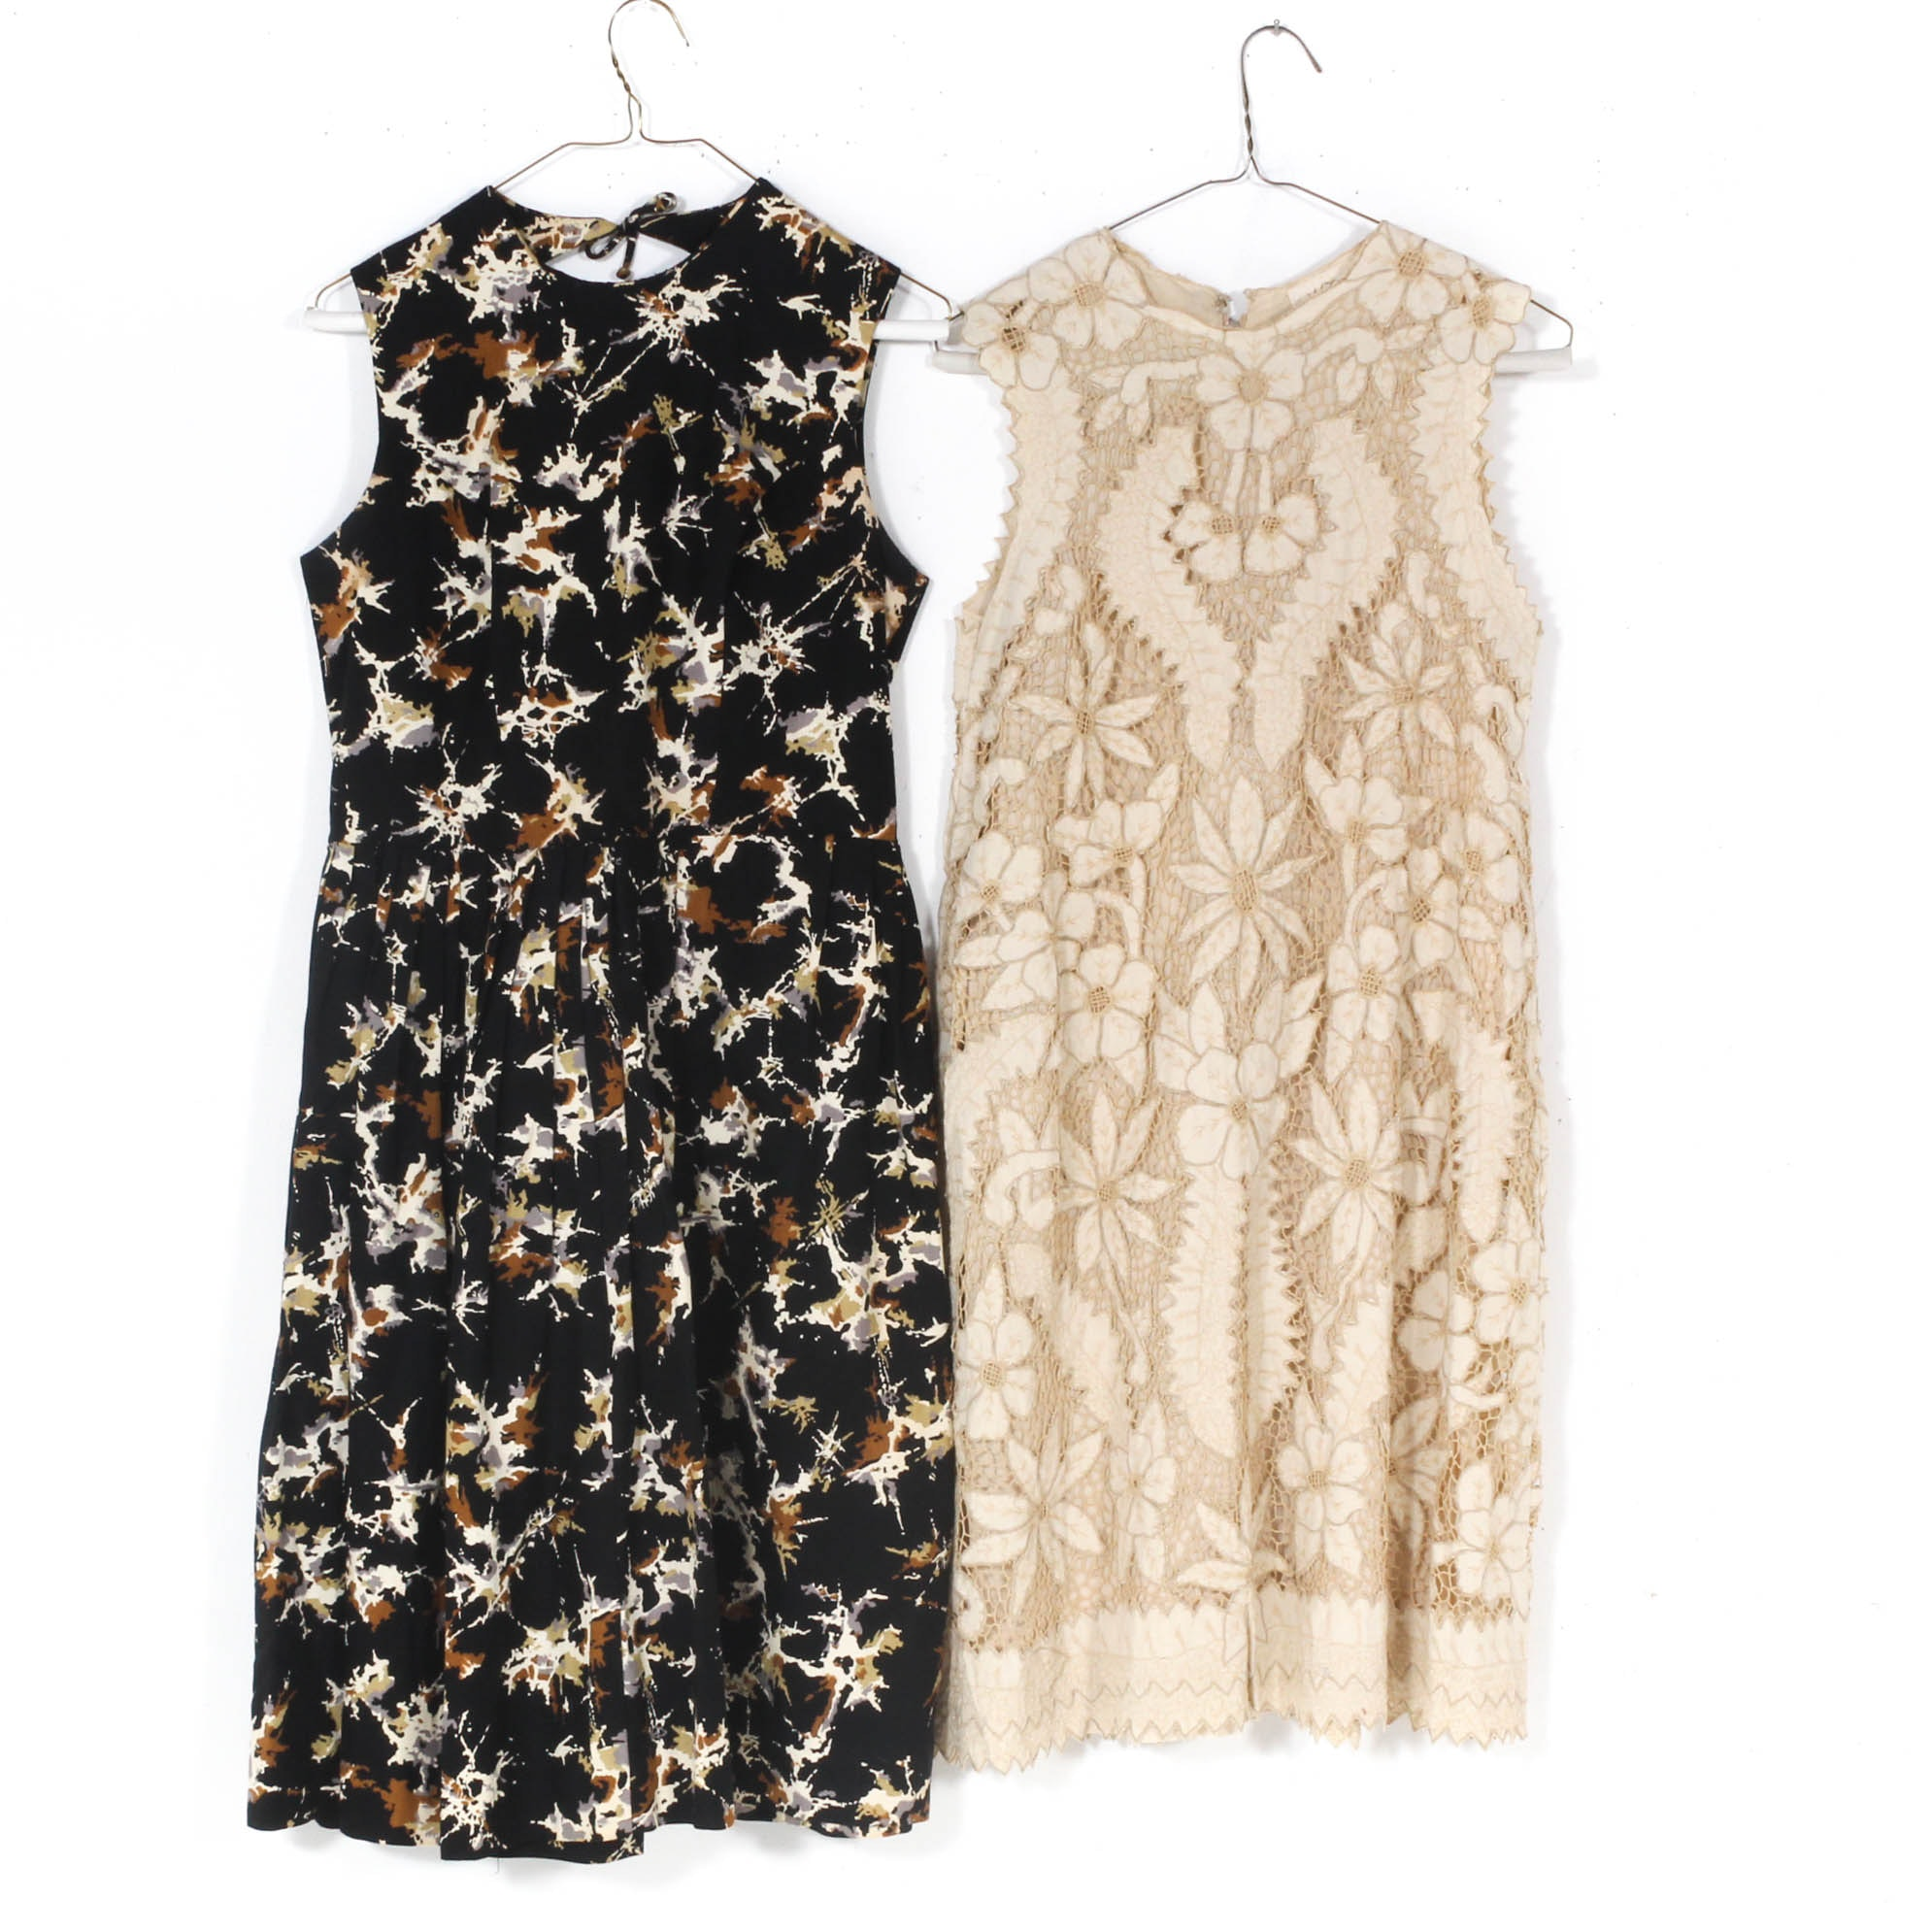 Women's Mid-20th Century Vintage Piqué and Crochet Lace Dresses